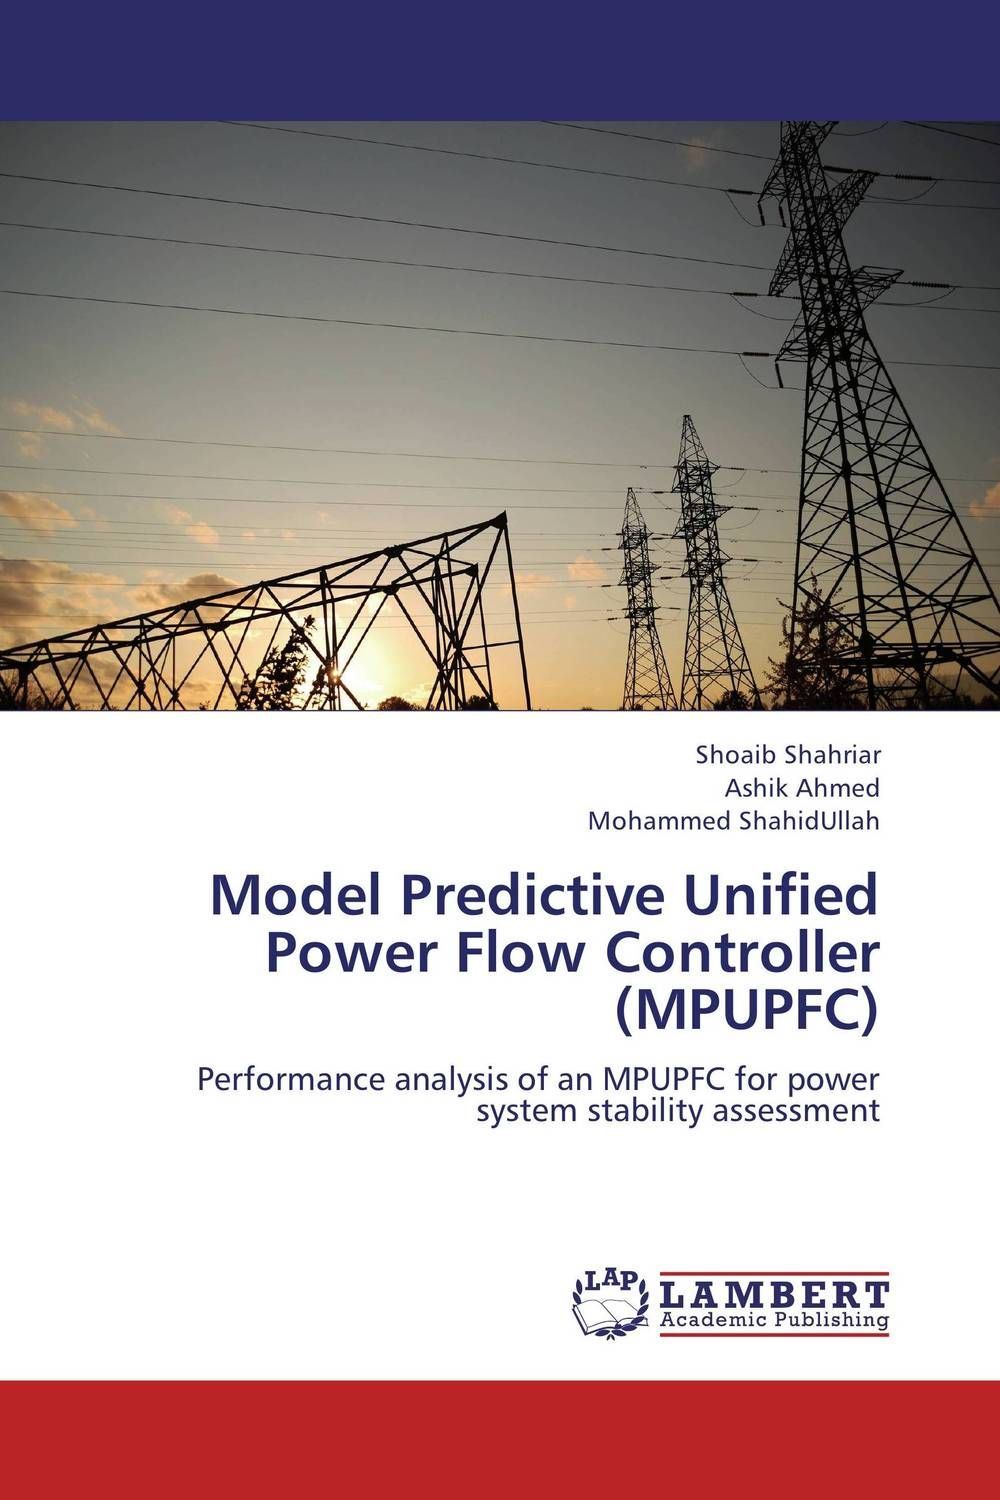 Model Predictive Unified Power Flow Controller (MPUPFC)